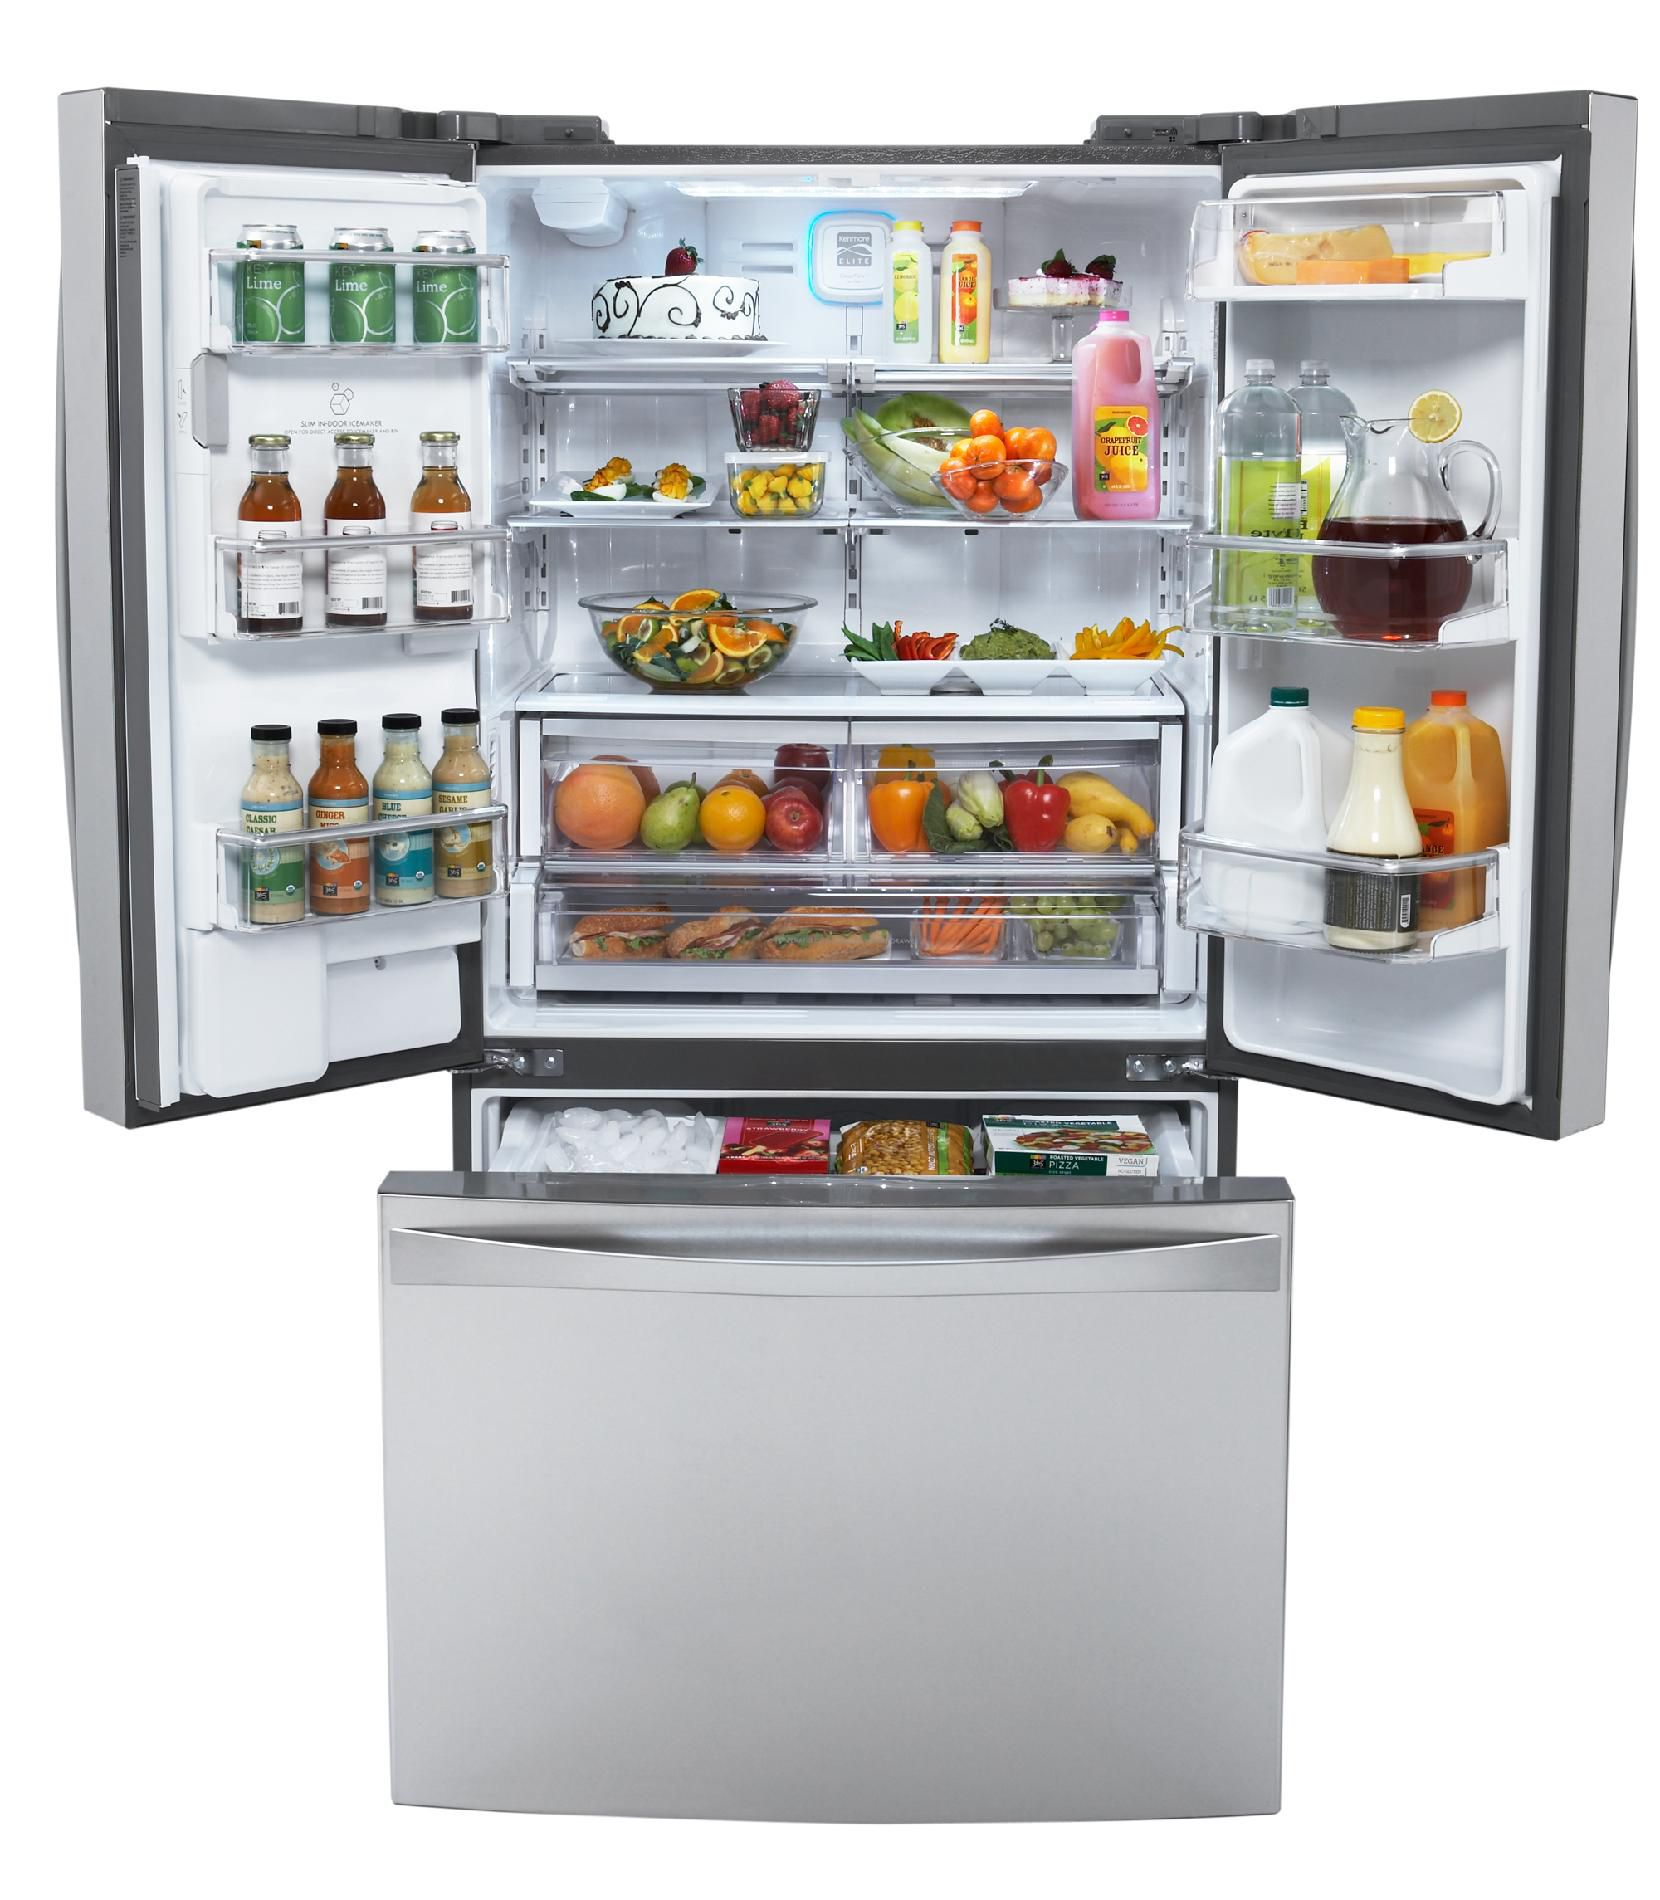 Kenmore Elite 25 cu. ft. Counter-Depth French Door  Bottom-Freezer Refrigerator -Stainless Steel